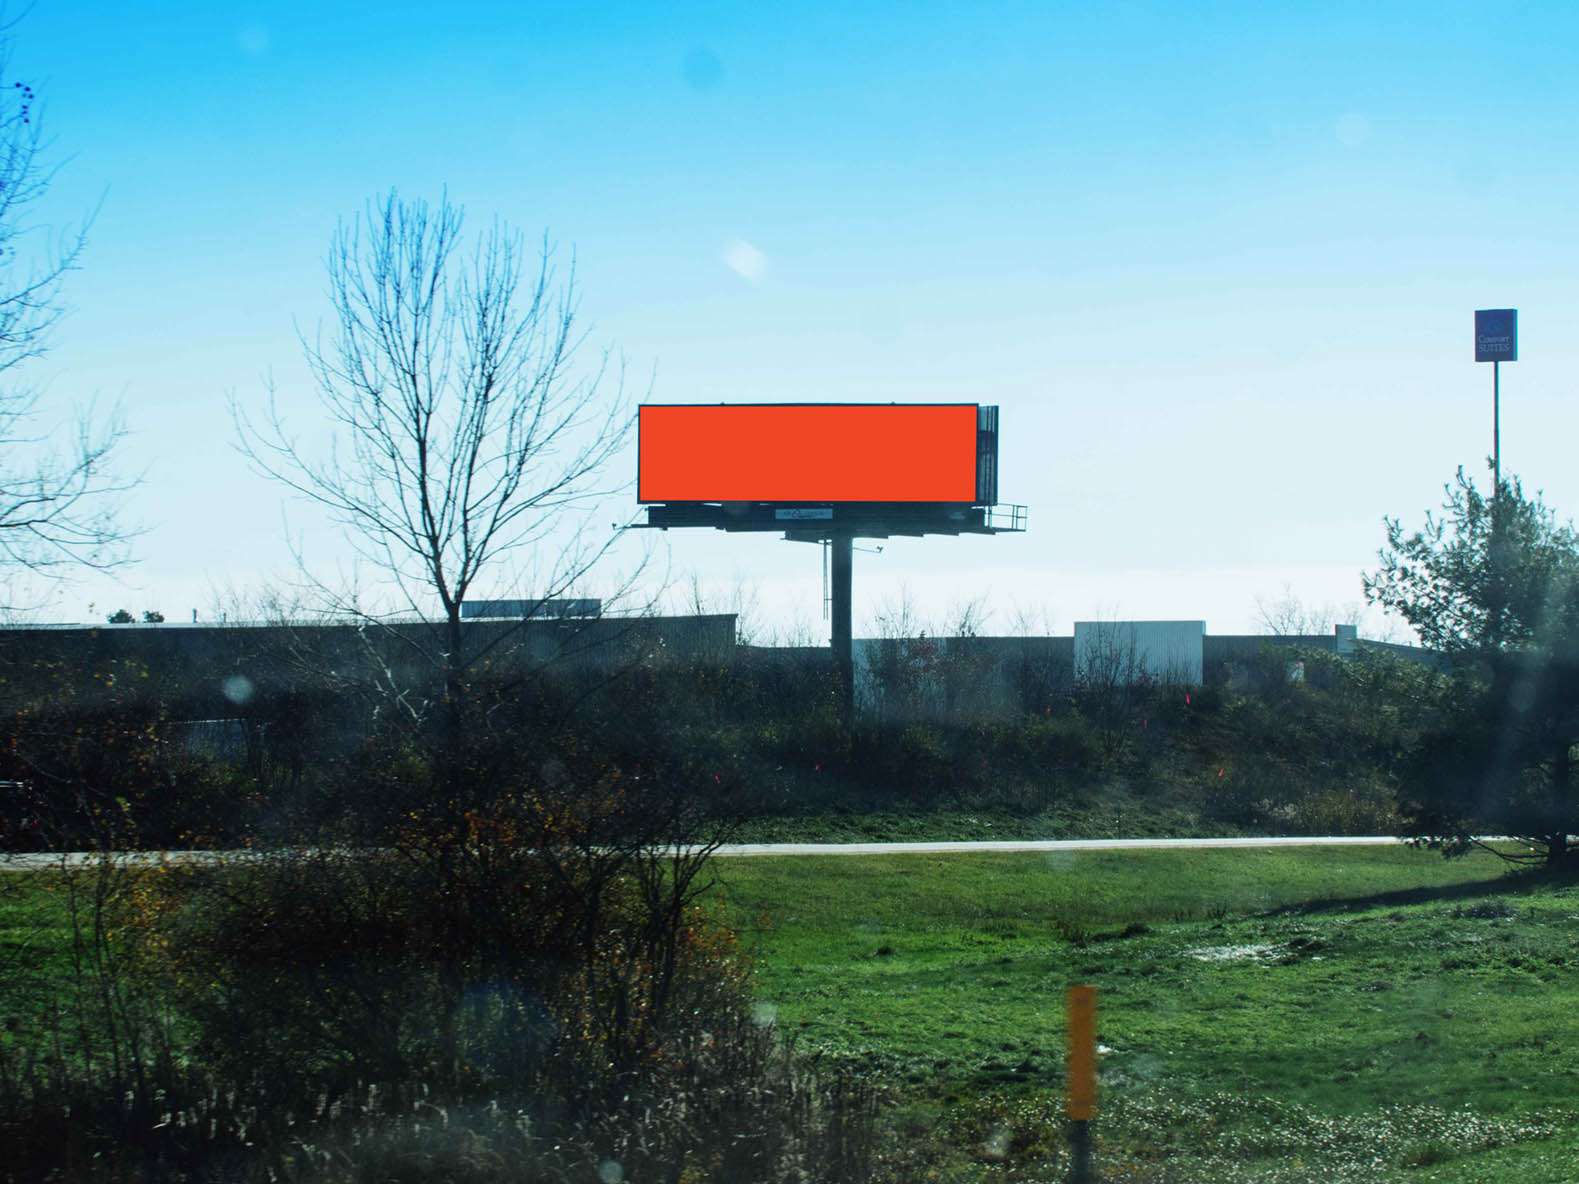 Billboard 123 North (14 x 48) - Geopath: 30722599